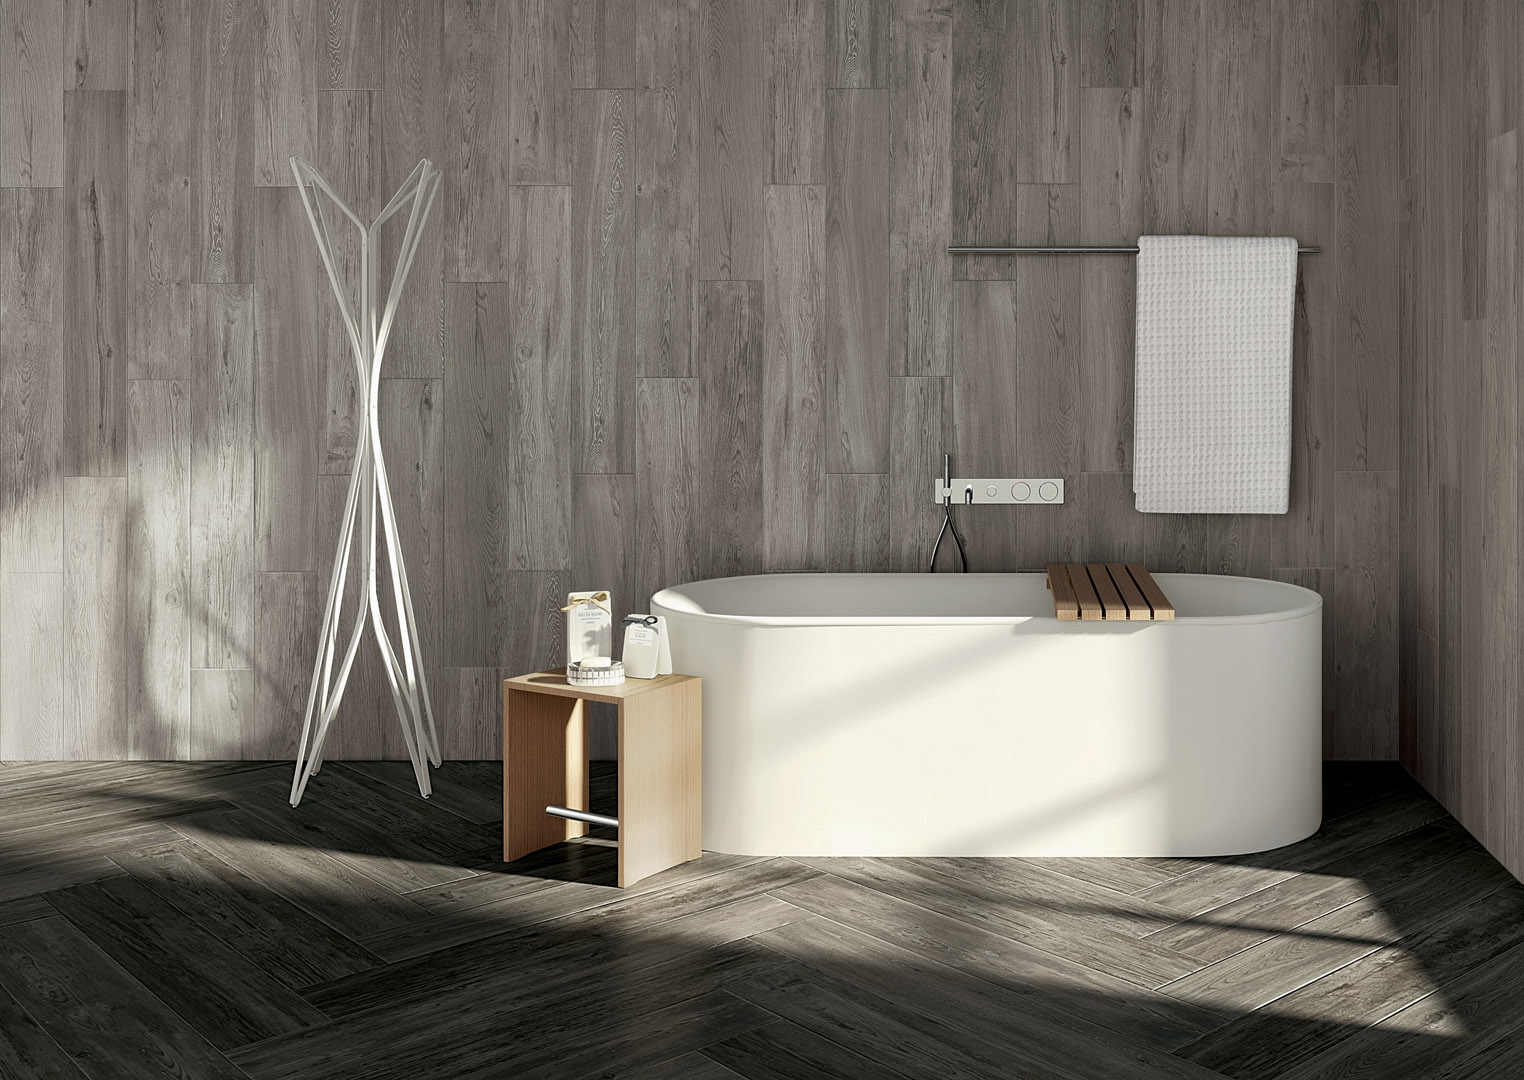 porcelain tile example: Trio range high resolution photo